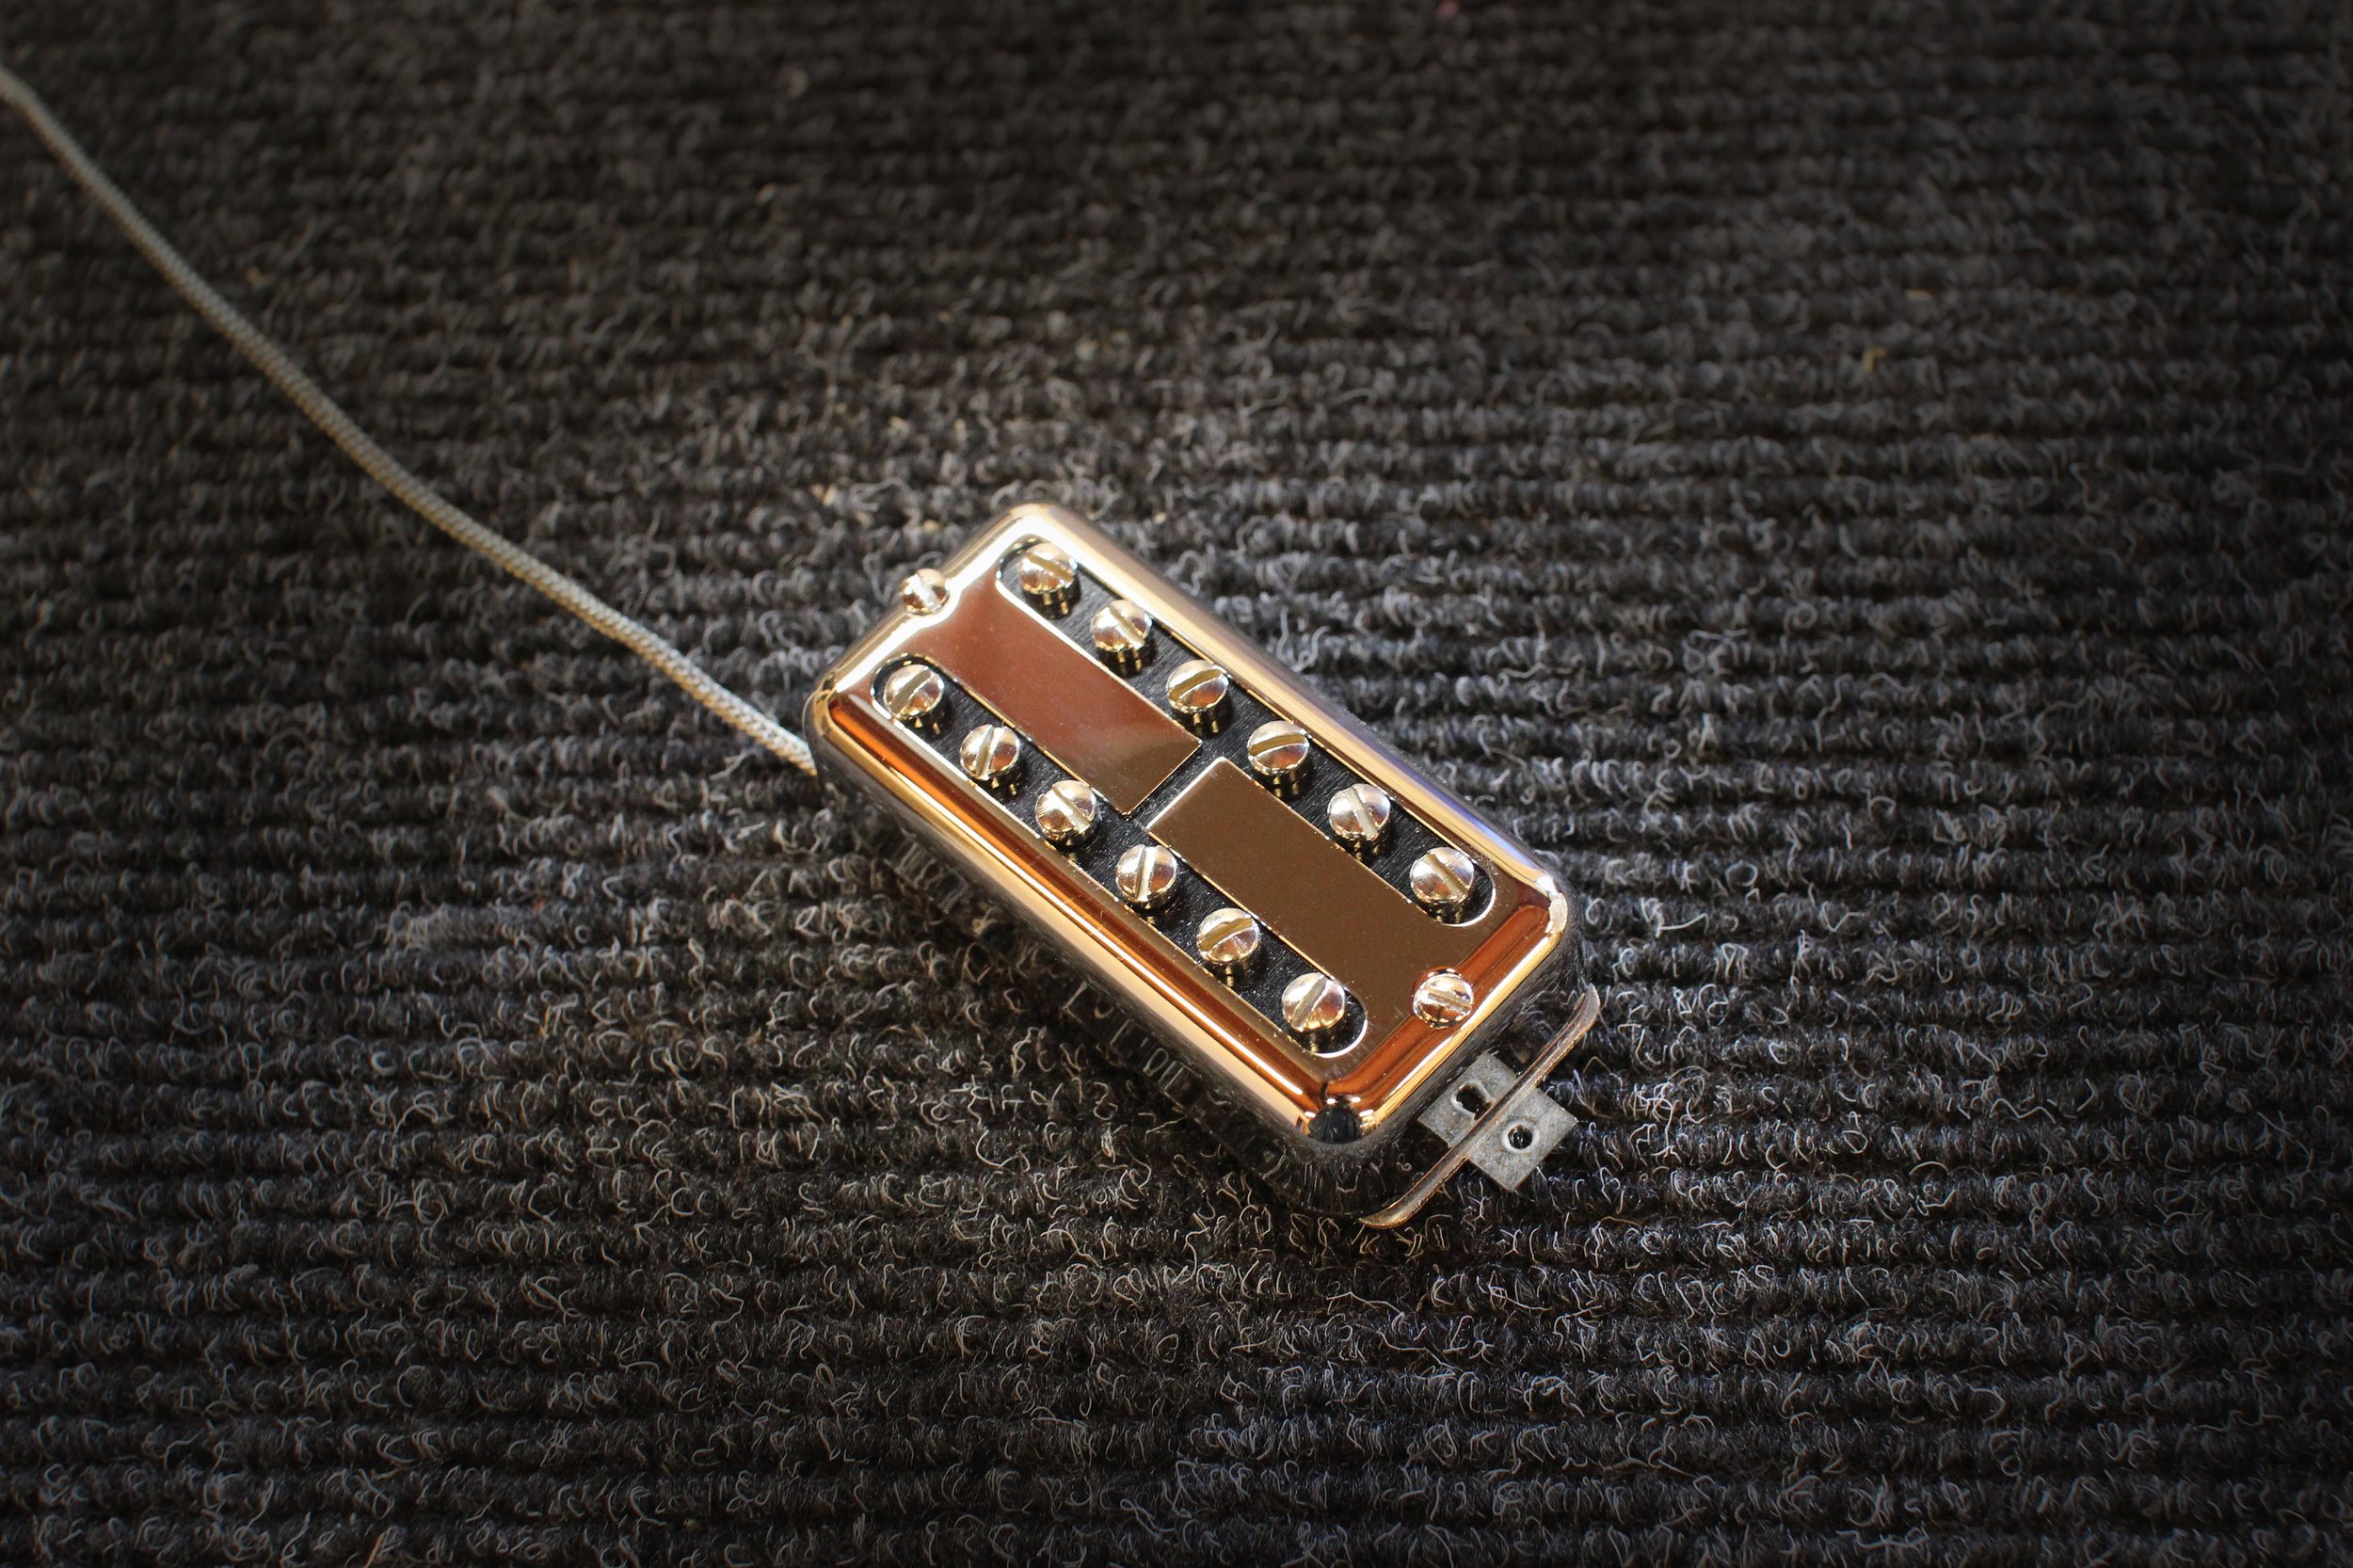 J-Tron Deluxe - My personally Tweaked version of the classic Vintage Filtertron pickups, that were almost perfect… but not quite.